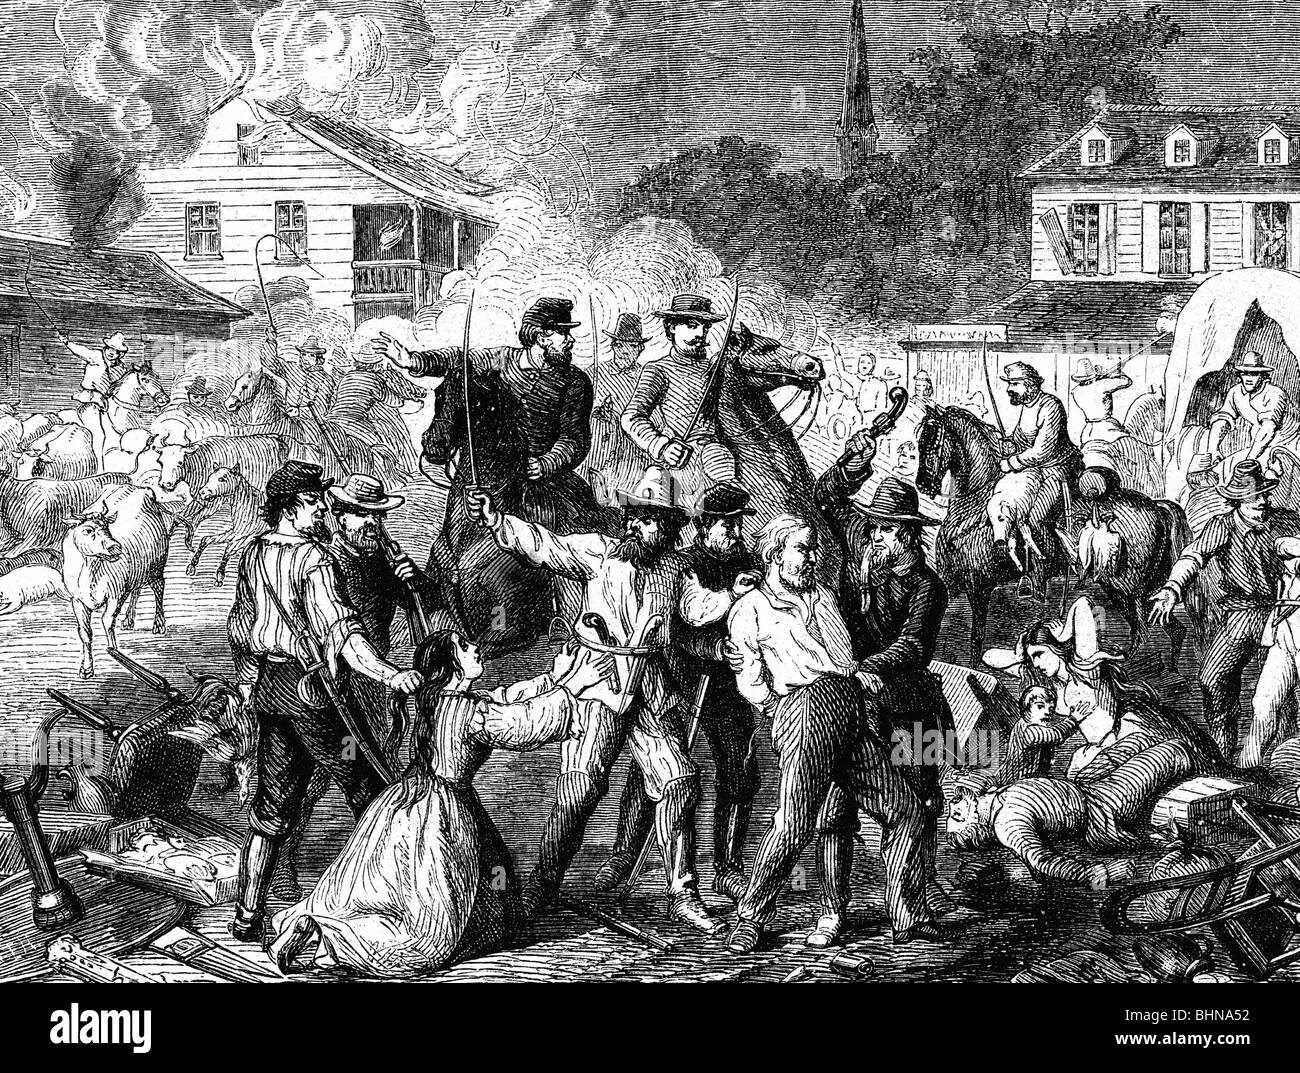 geography / travel, USA, American Civil War 1861 - 1865, Morgan's Raid,  11.6.- 26.7.1863, Confederate soldiers looting a village, wood engraving,  1863, ...